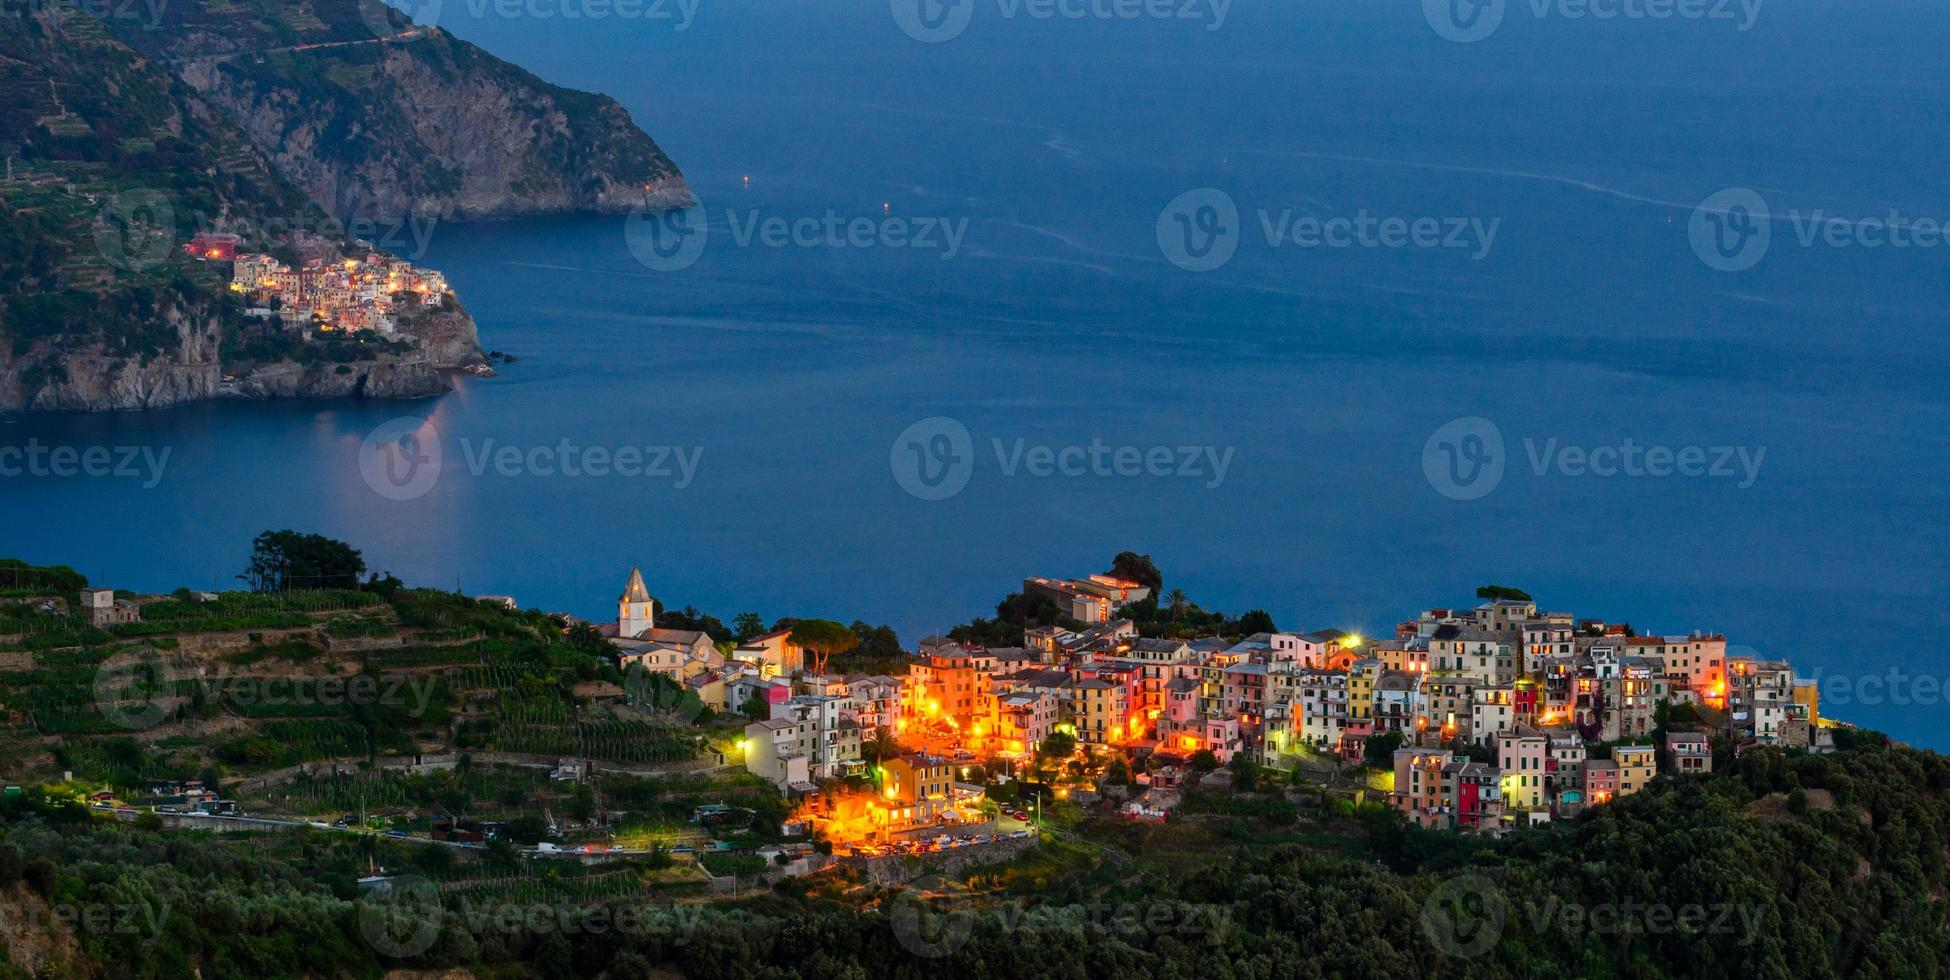 Cinque Terre (Liguria, Italian Riviera), Corniglia and Manarola photo